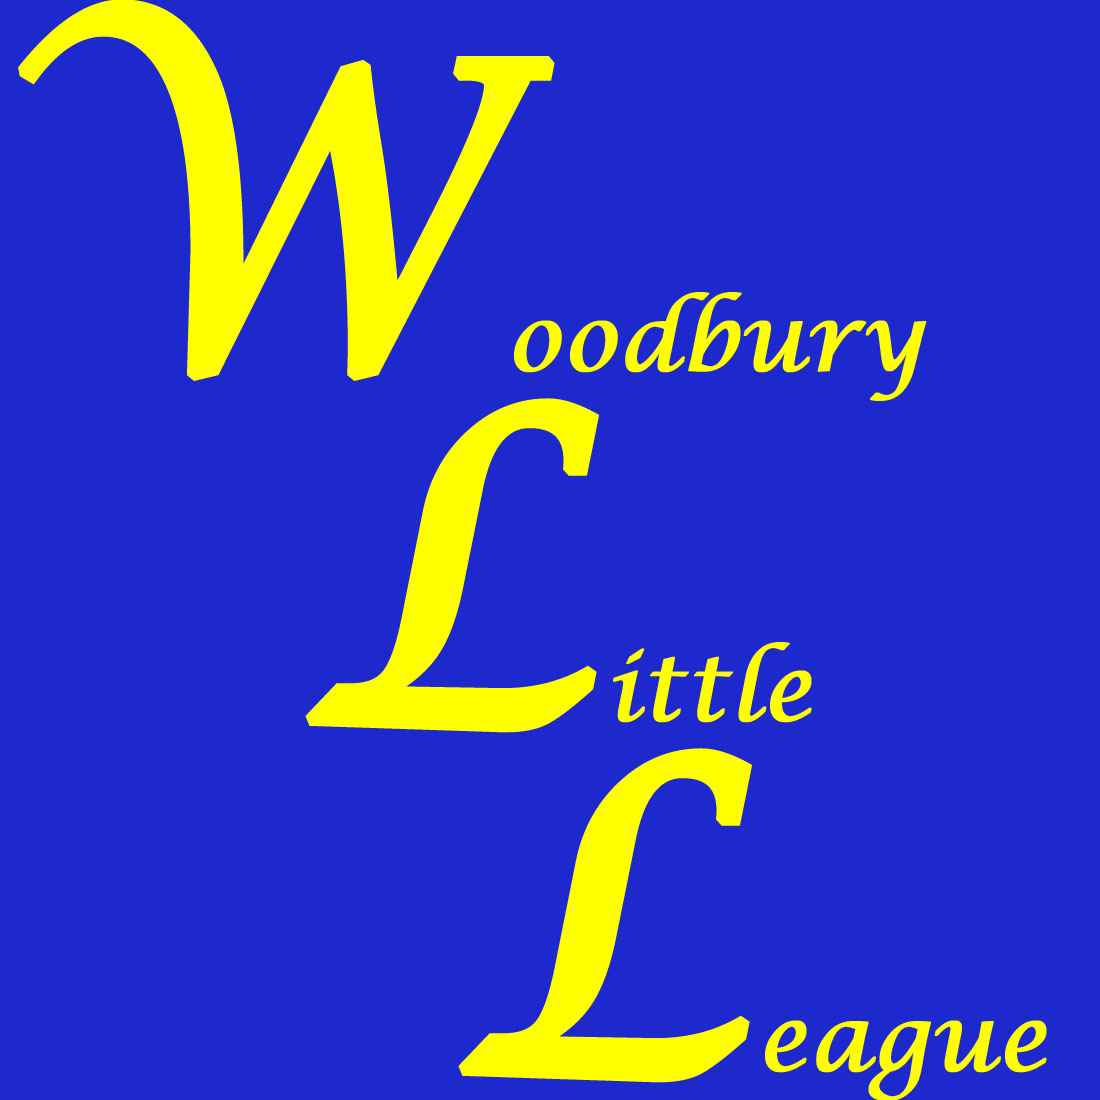 Woodburyll logo copy